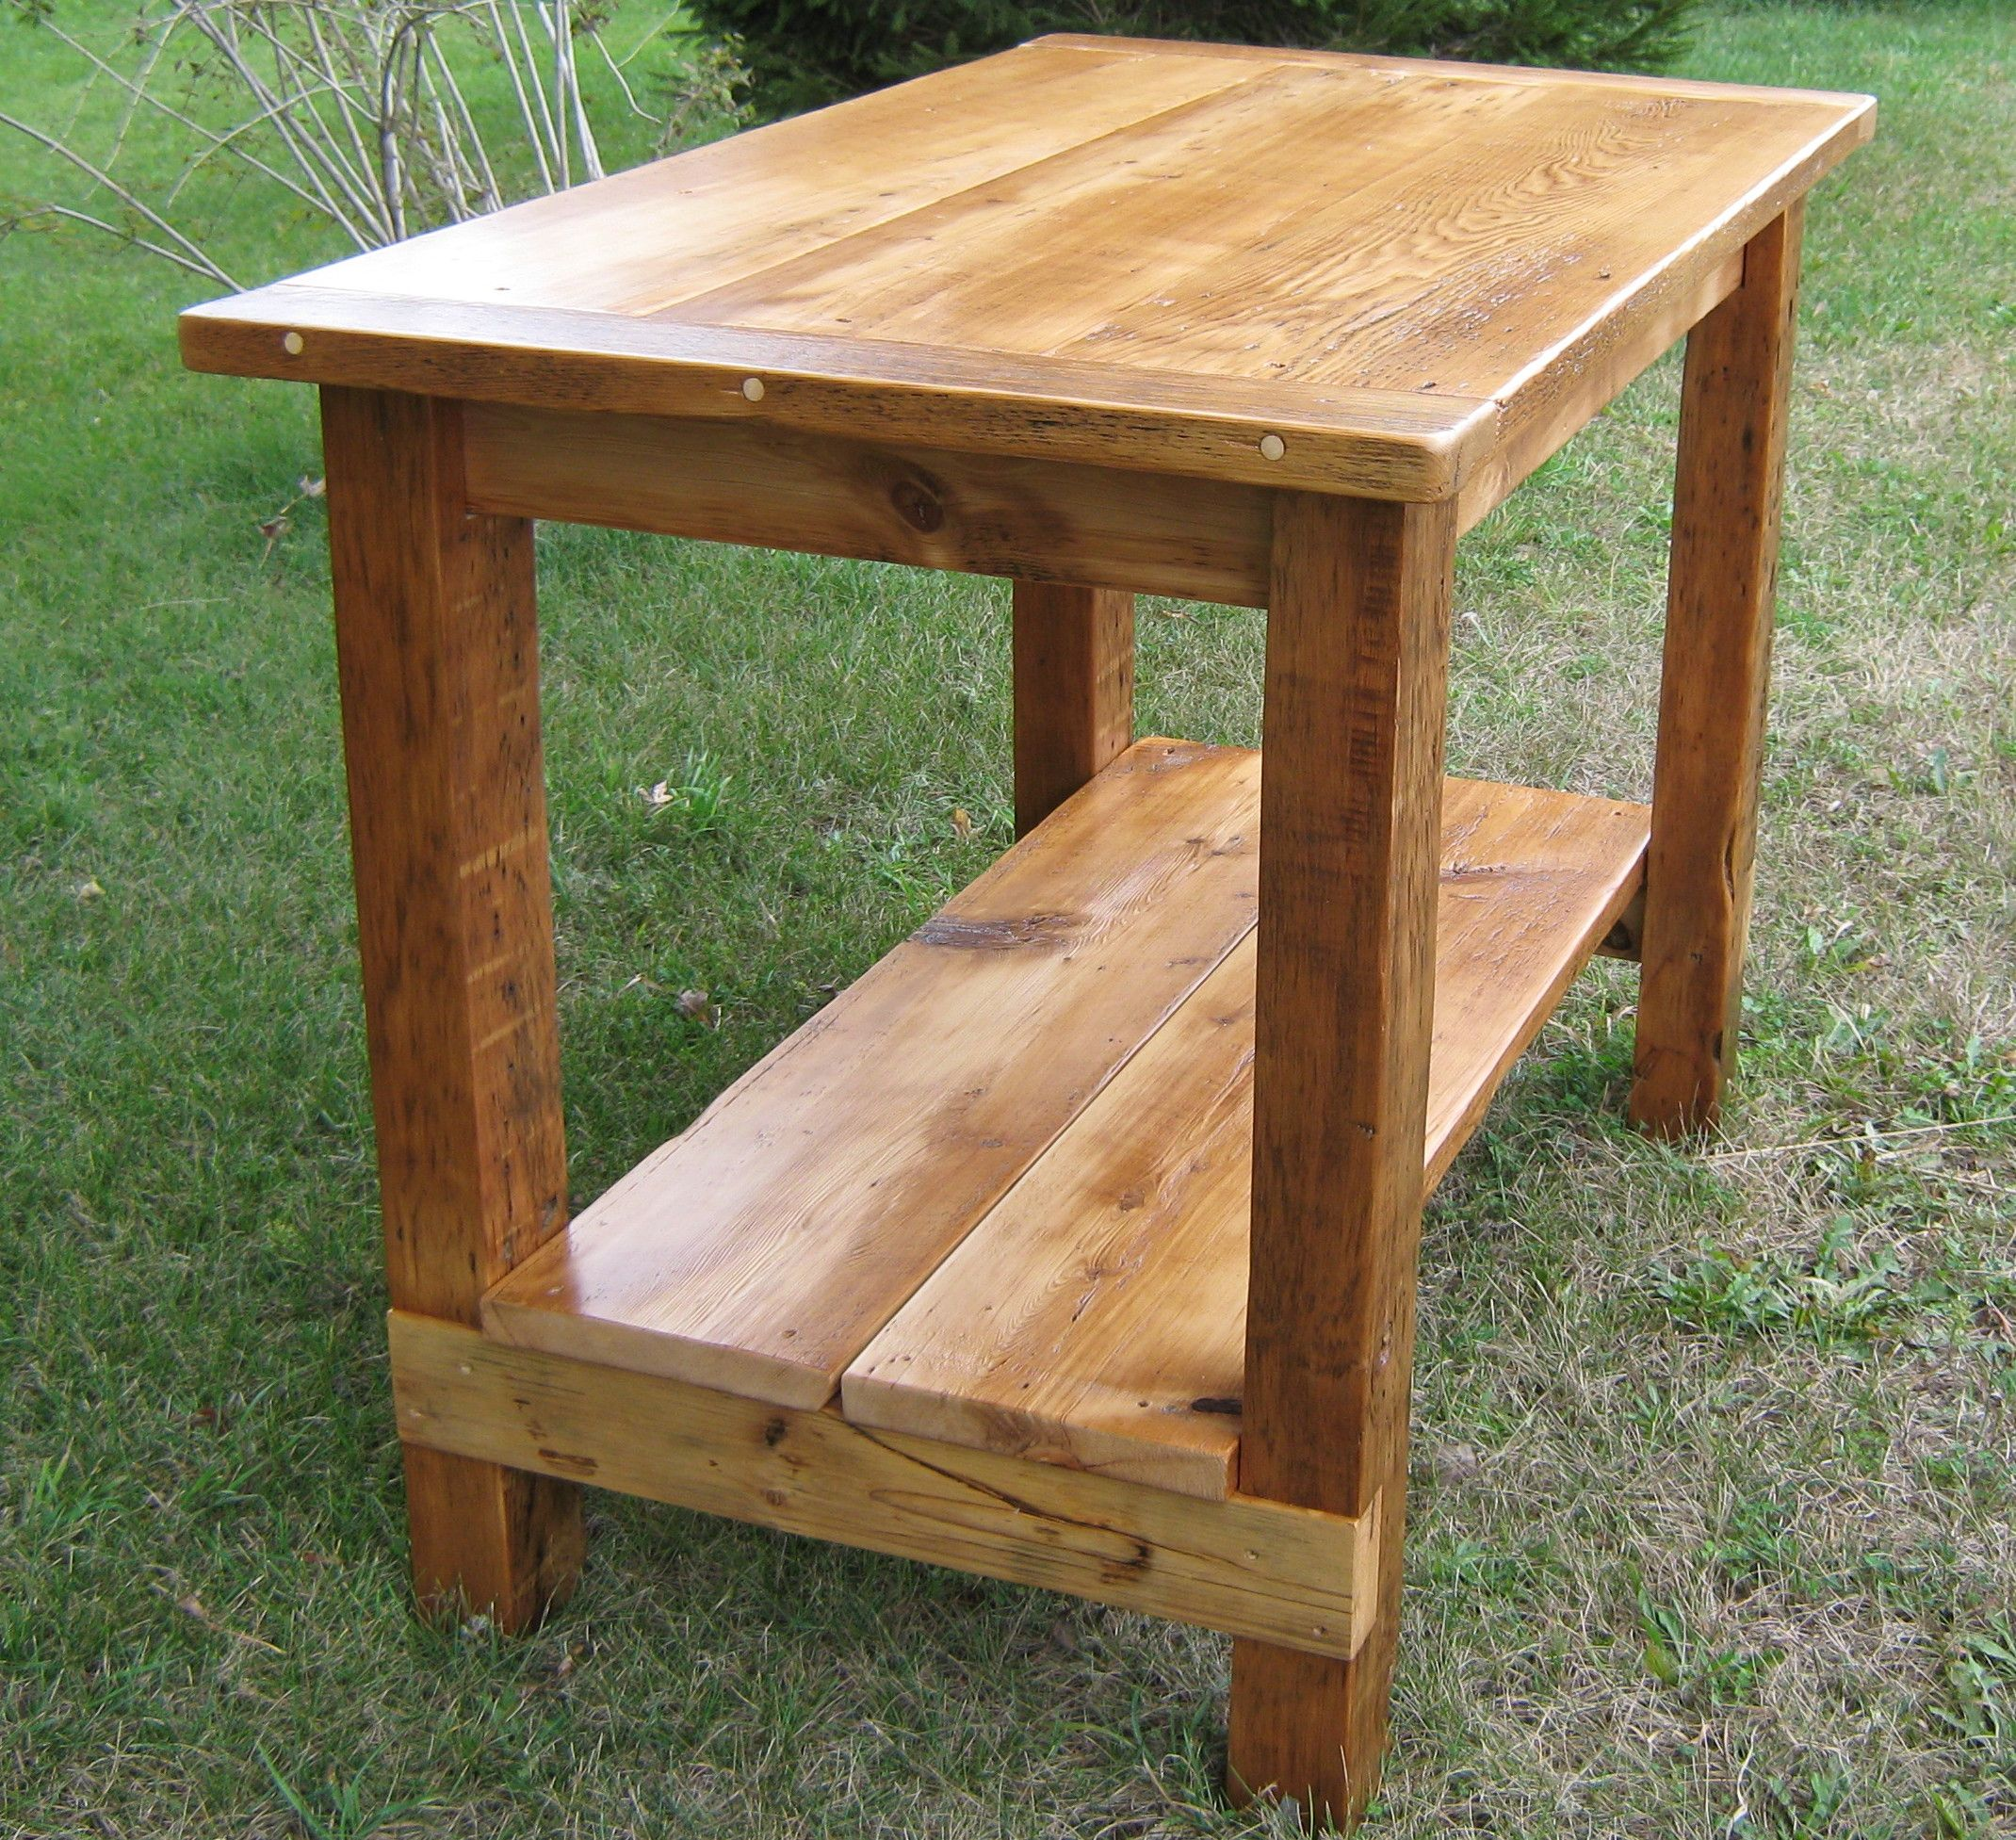 Reclaimed Wood Island...Need something really similar to this for the kitchen under the window  to have a serving top/laundry folding top/breakfast table but don't want it to take up much room this would be perfect